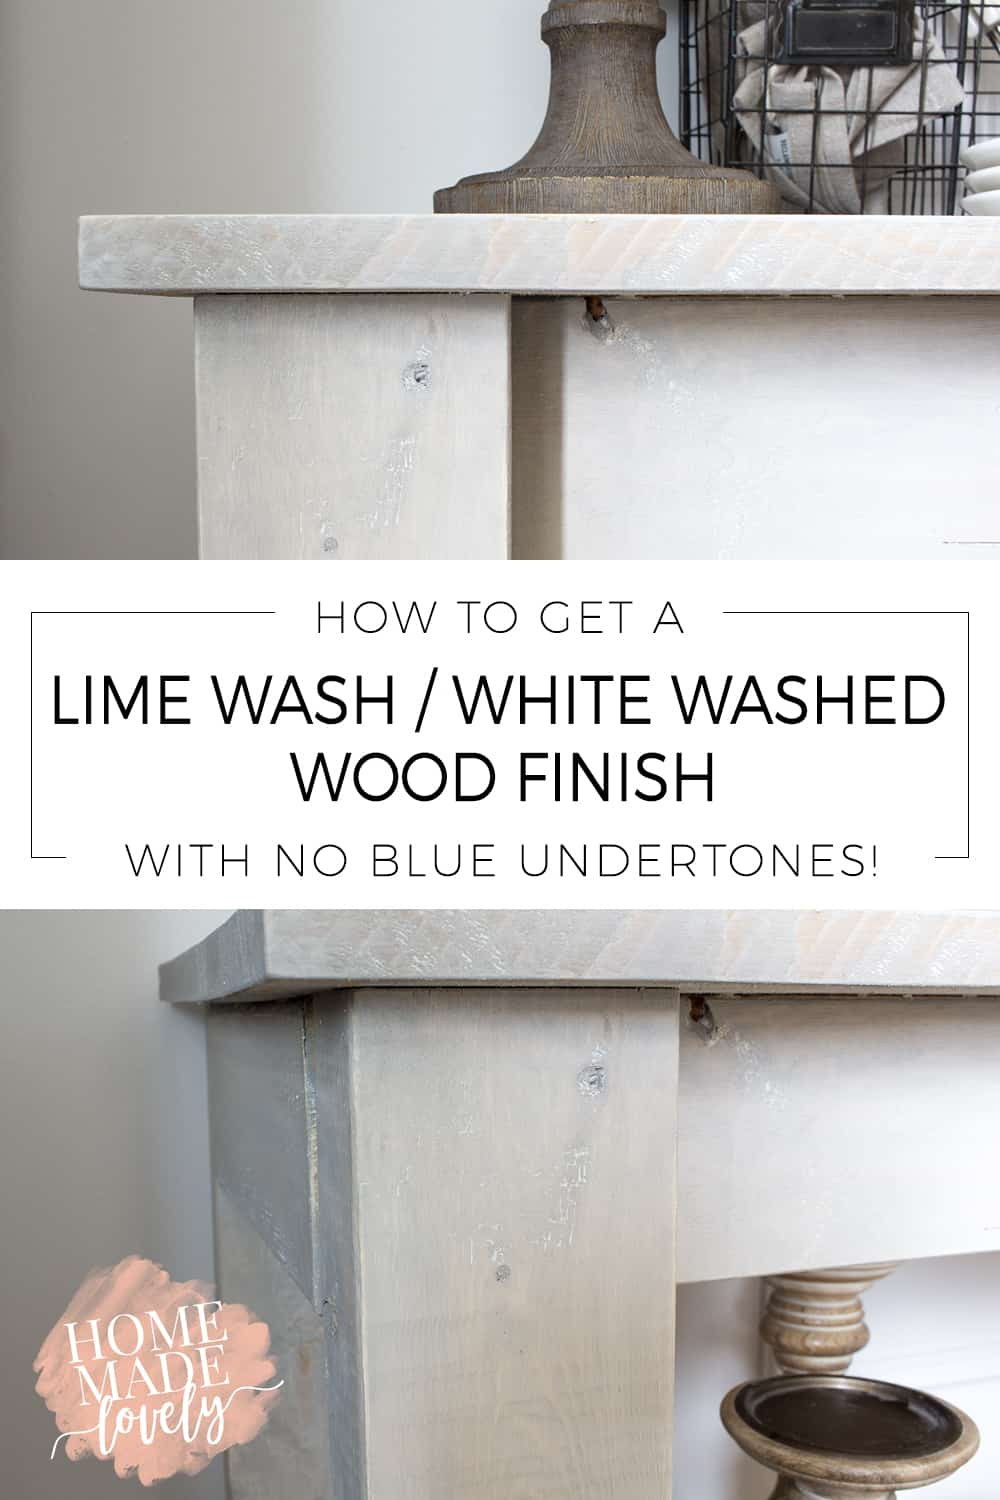 Want to get the lime wash/white washed wood finish without the blue undertones that typical store-bought pickling finish gives? Here's how to do it!